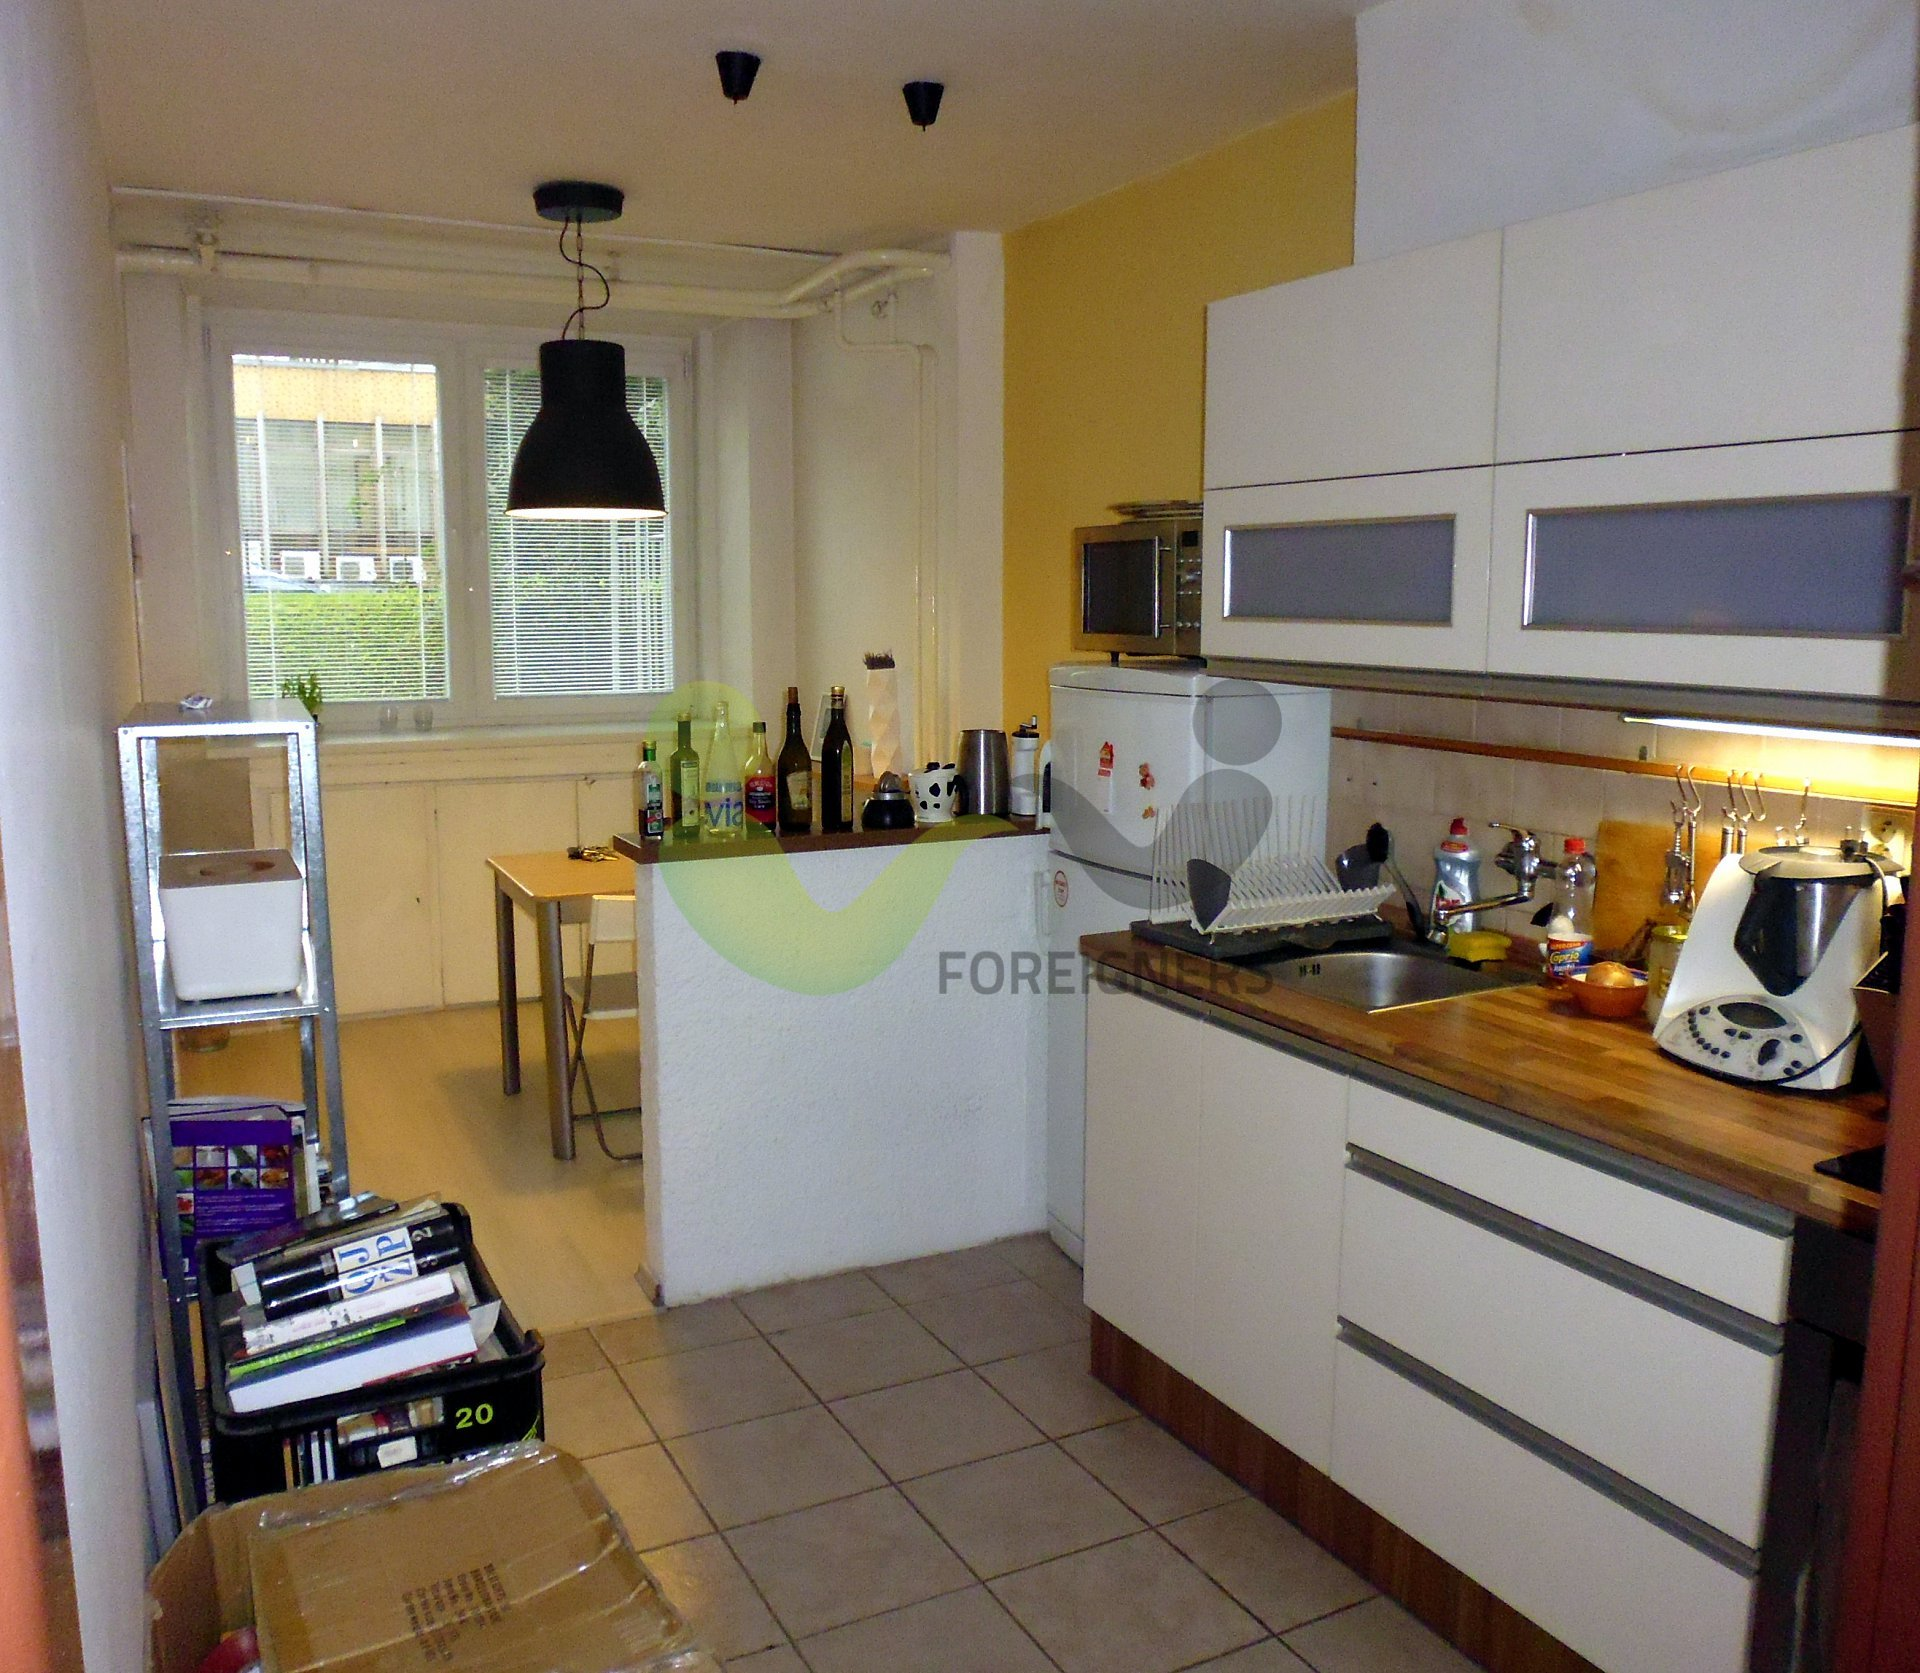 1-bedroom (1+1) - Apartment For Rent In Brno